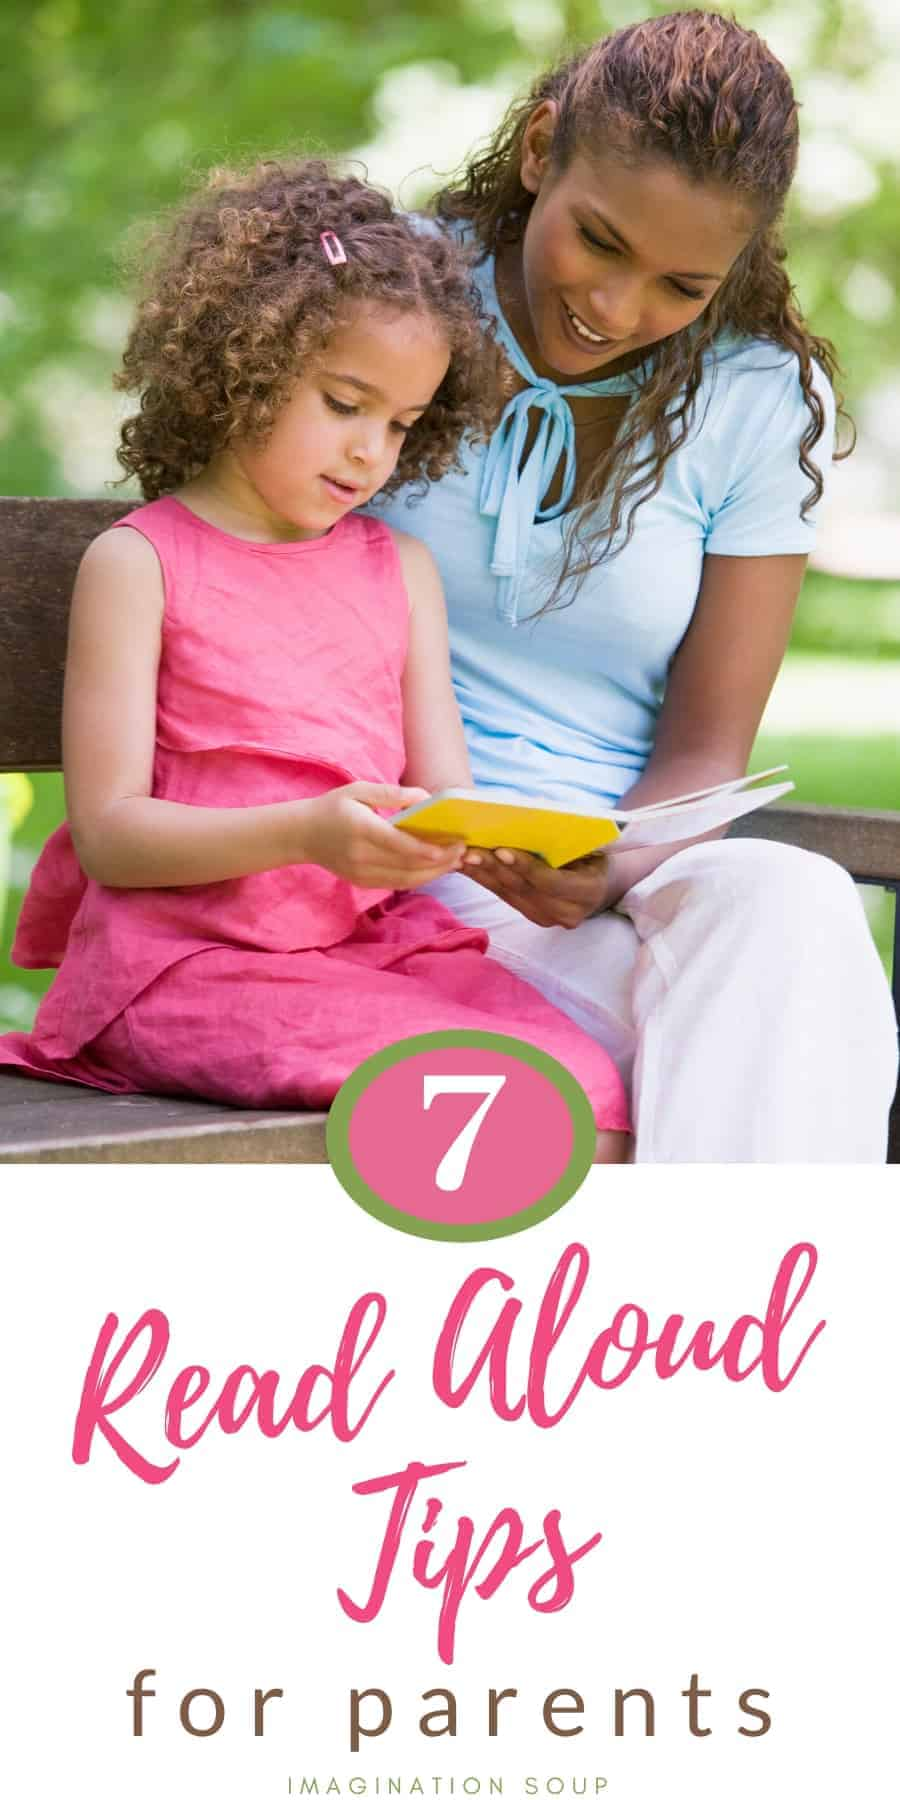 Tips for Read Aloud Time with Kids